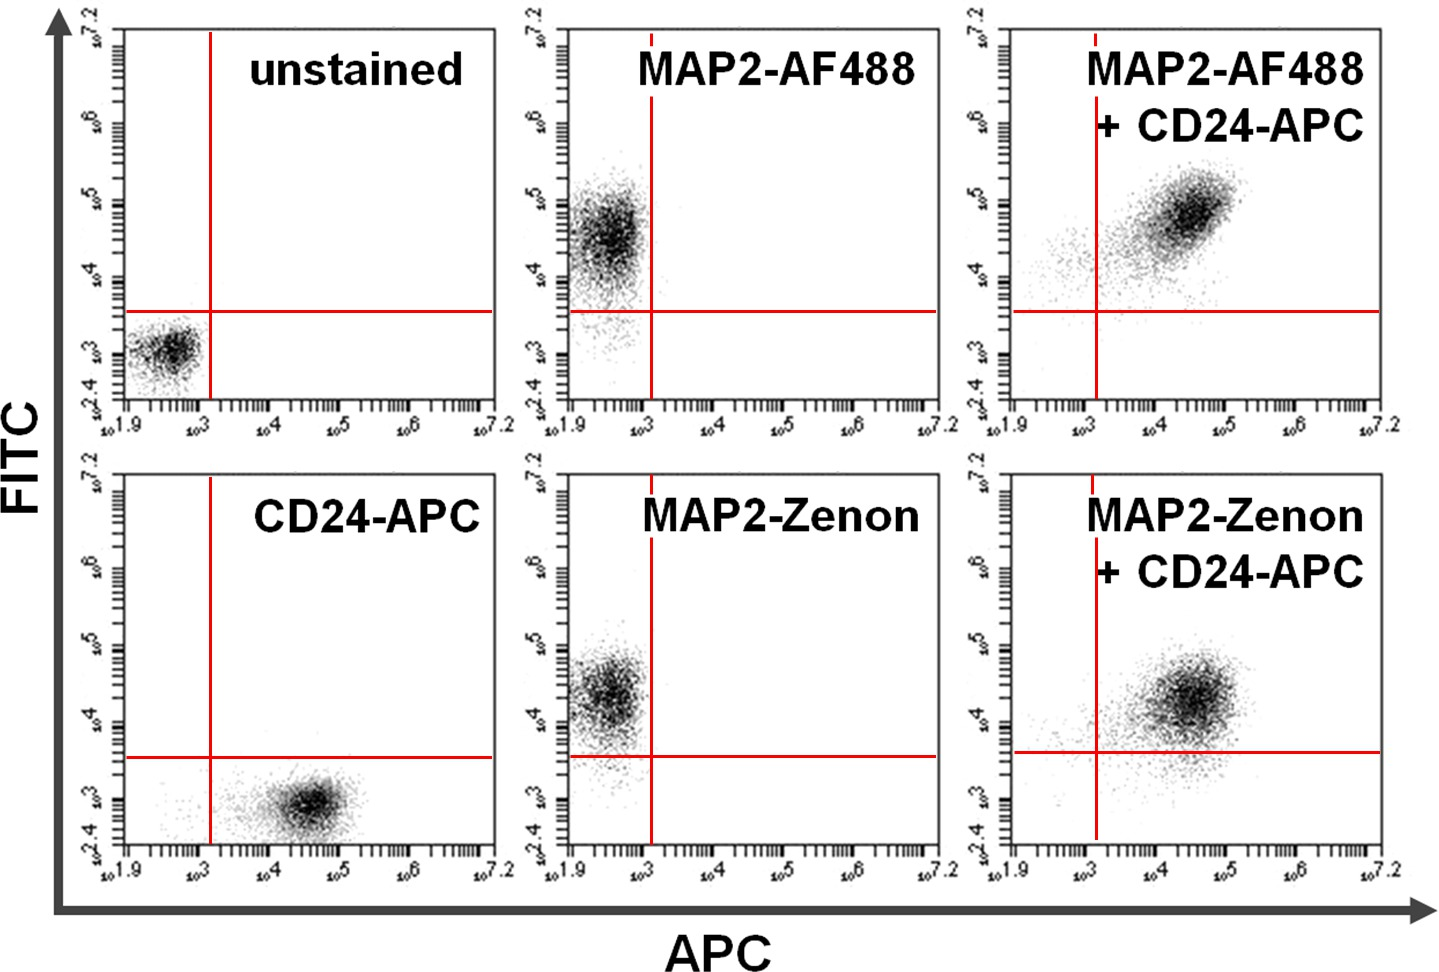 Flow Cytometry Protocols for Surface and Intracellular Antigen